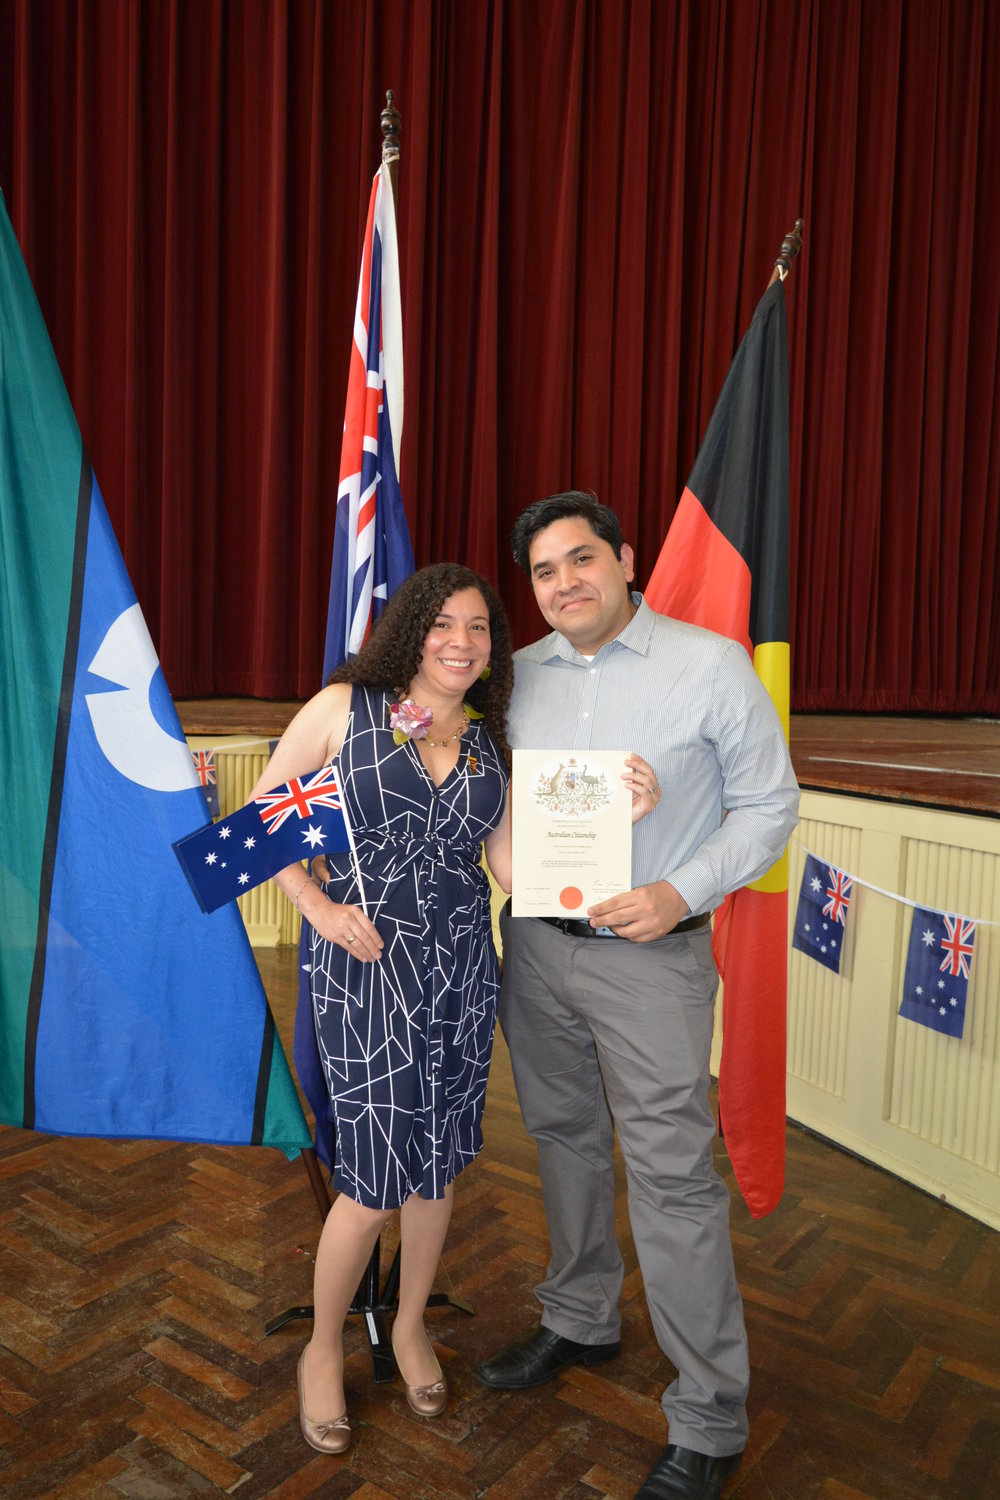 Karina and Juan David at her Australian Citizen ceremony in December 2016